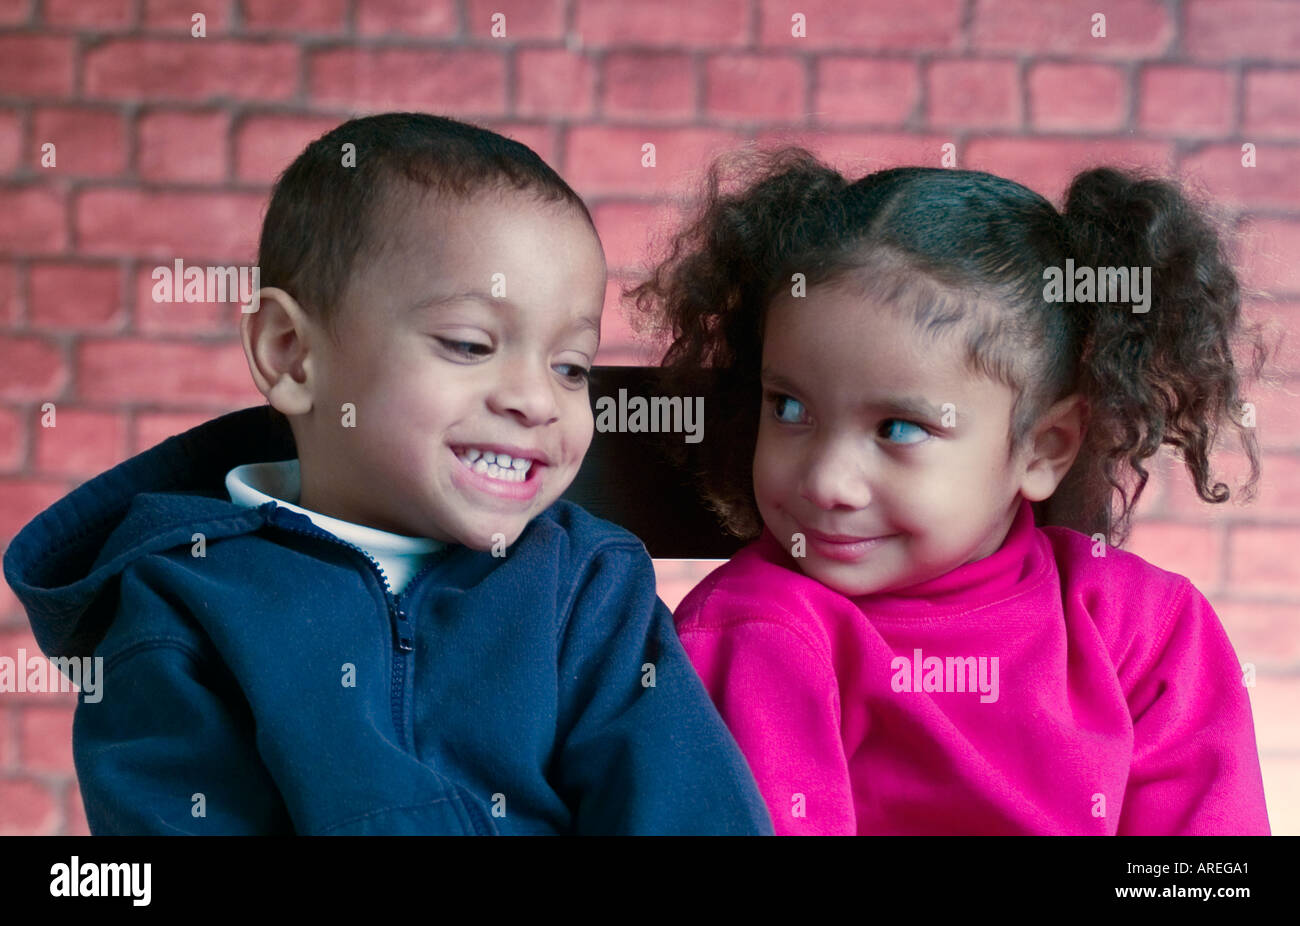 Pictures Of African American Twins Boy And Girl